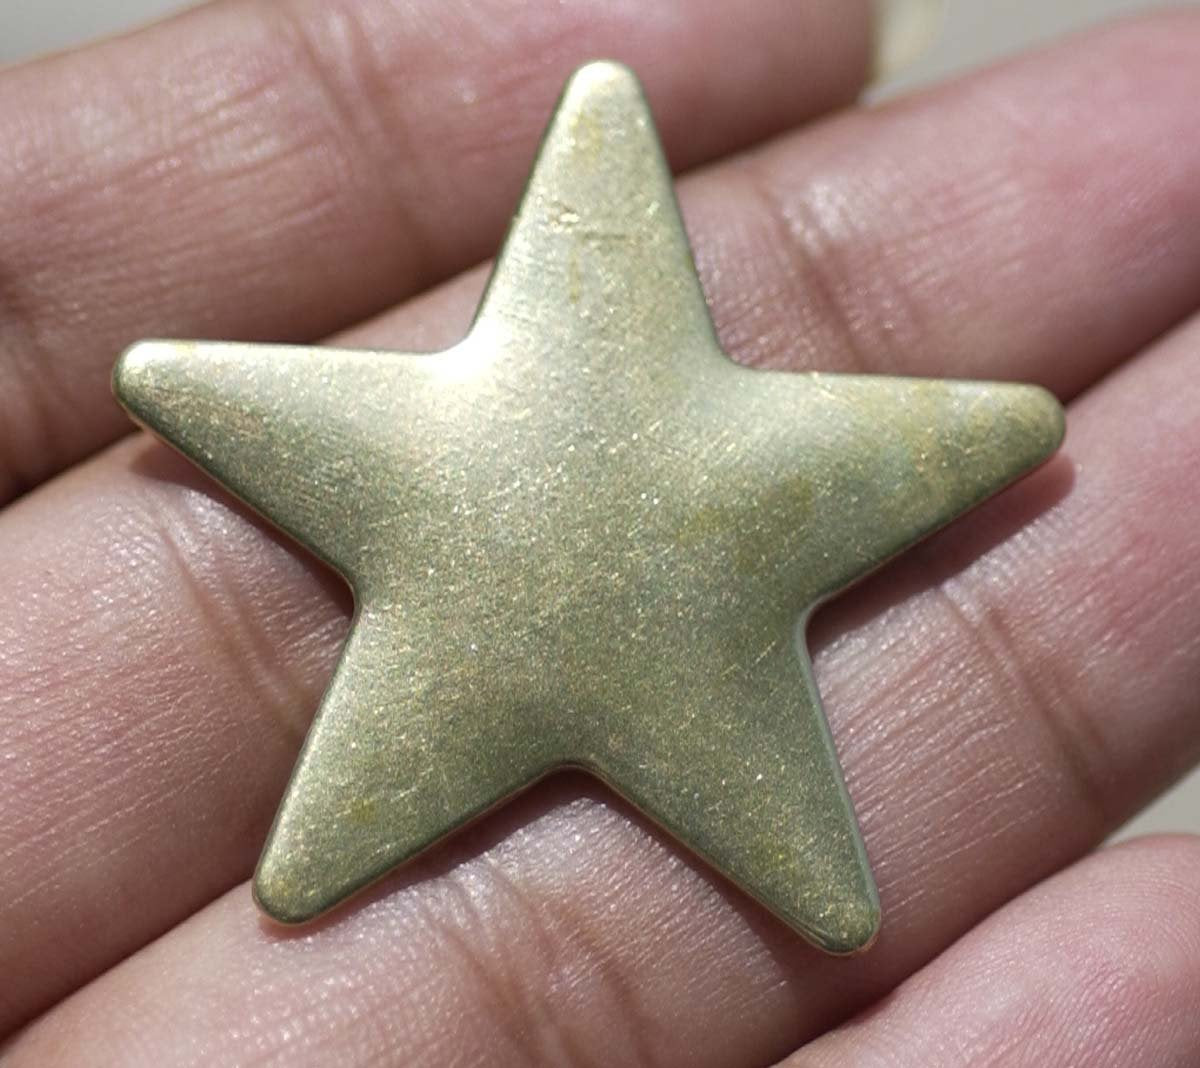 Brass Star Blank 20g 36mm Metalworking Cutout Blanks Figure for Soldering Stamping Texturing